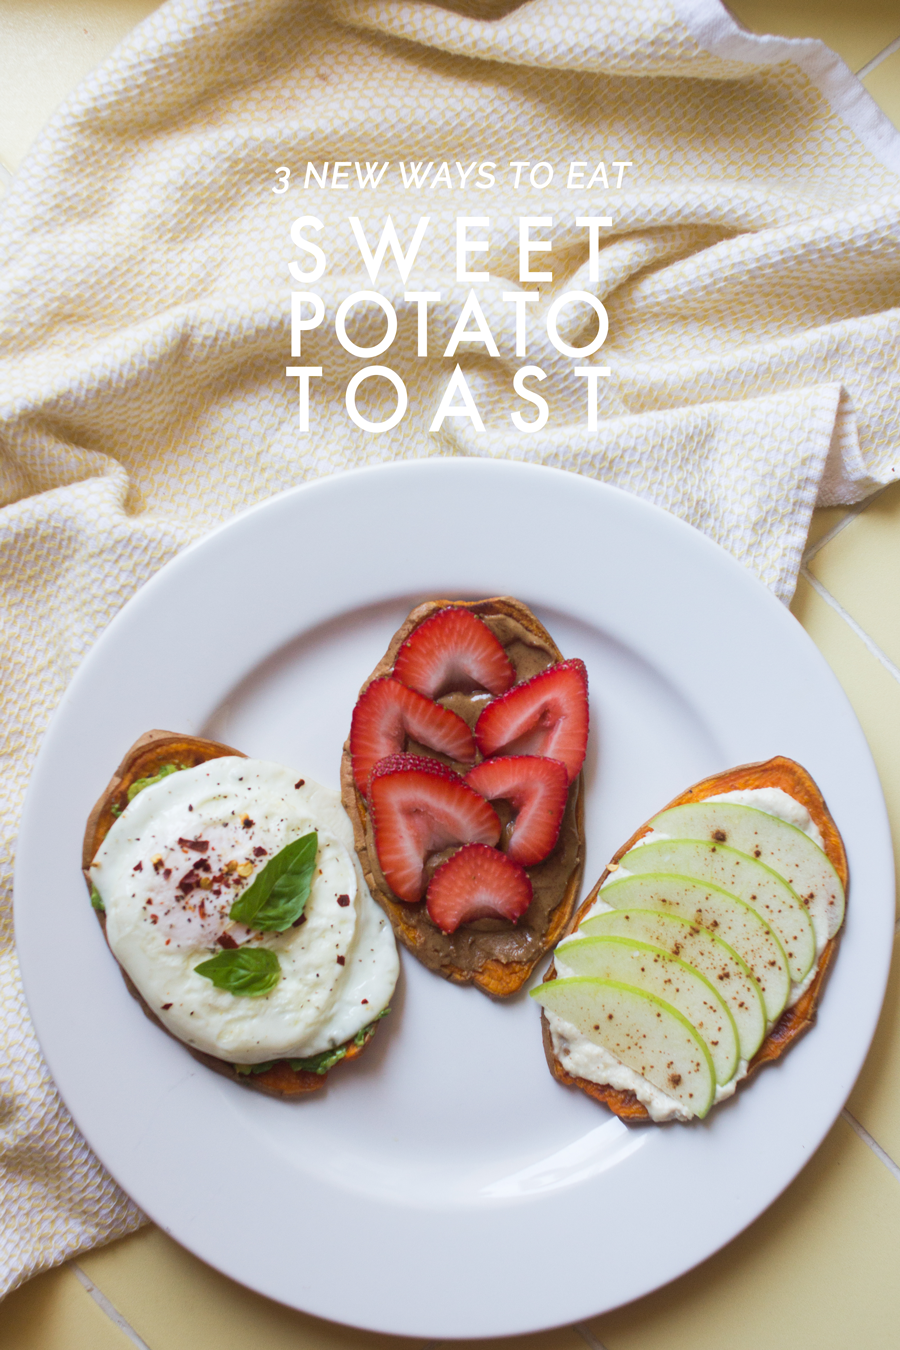 3 New Ways to Eat Sweet Potato Toast